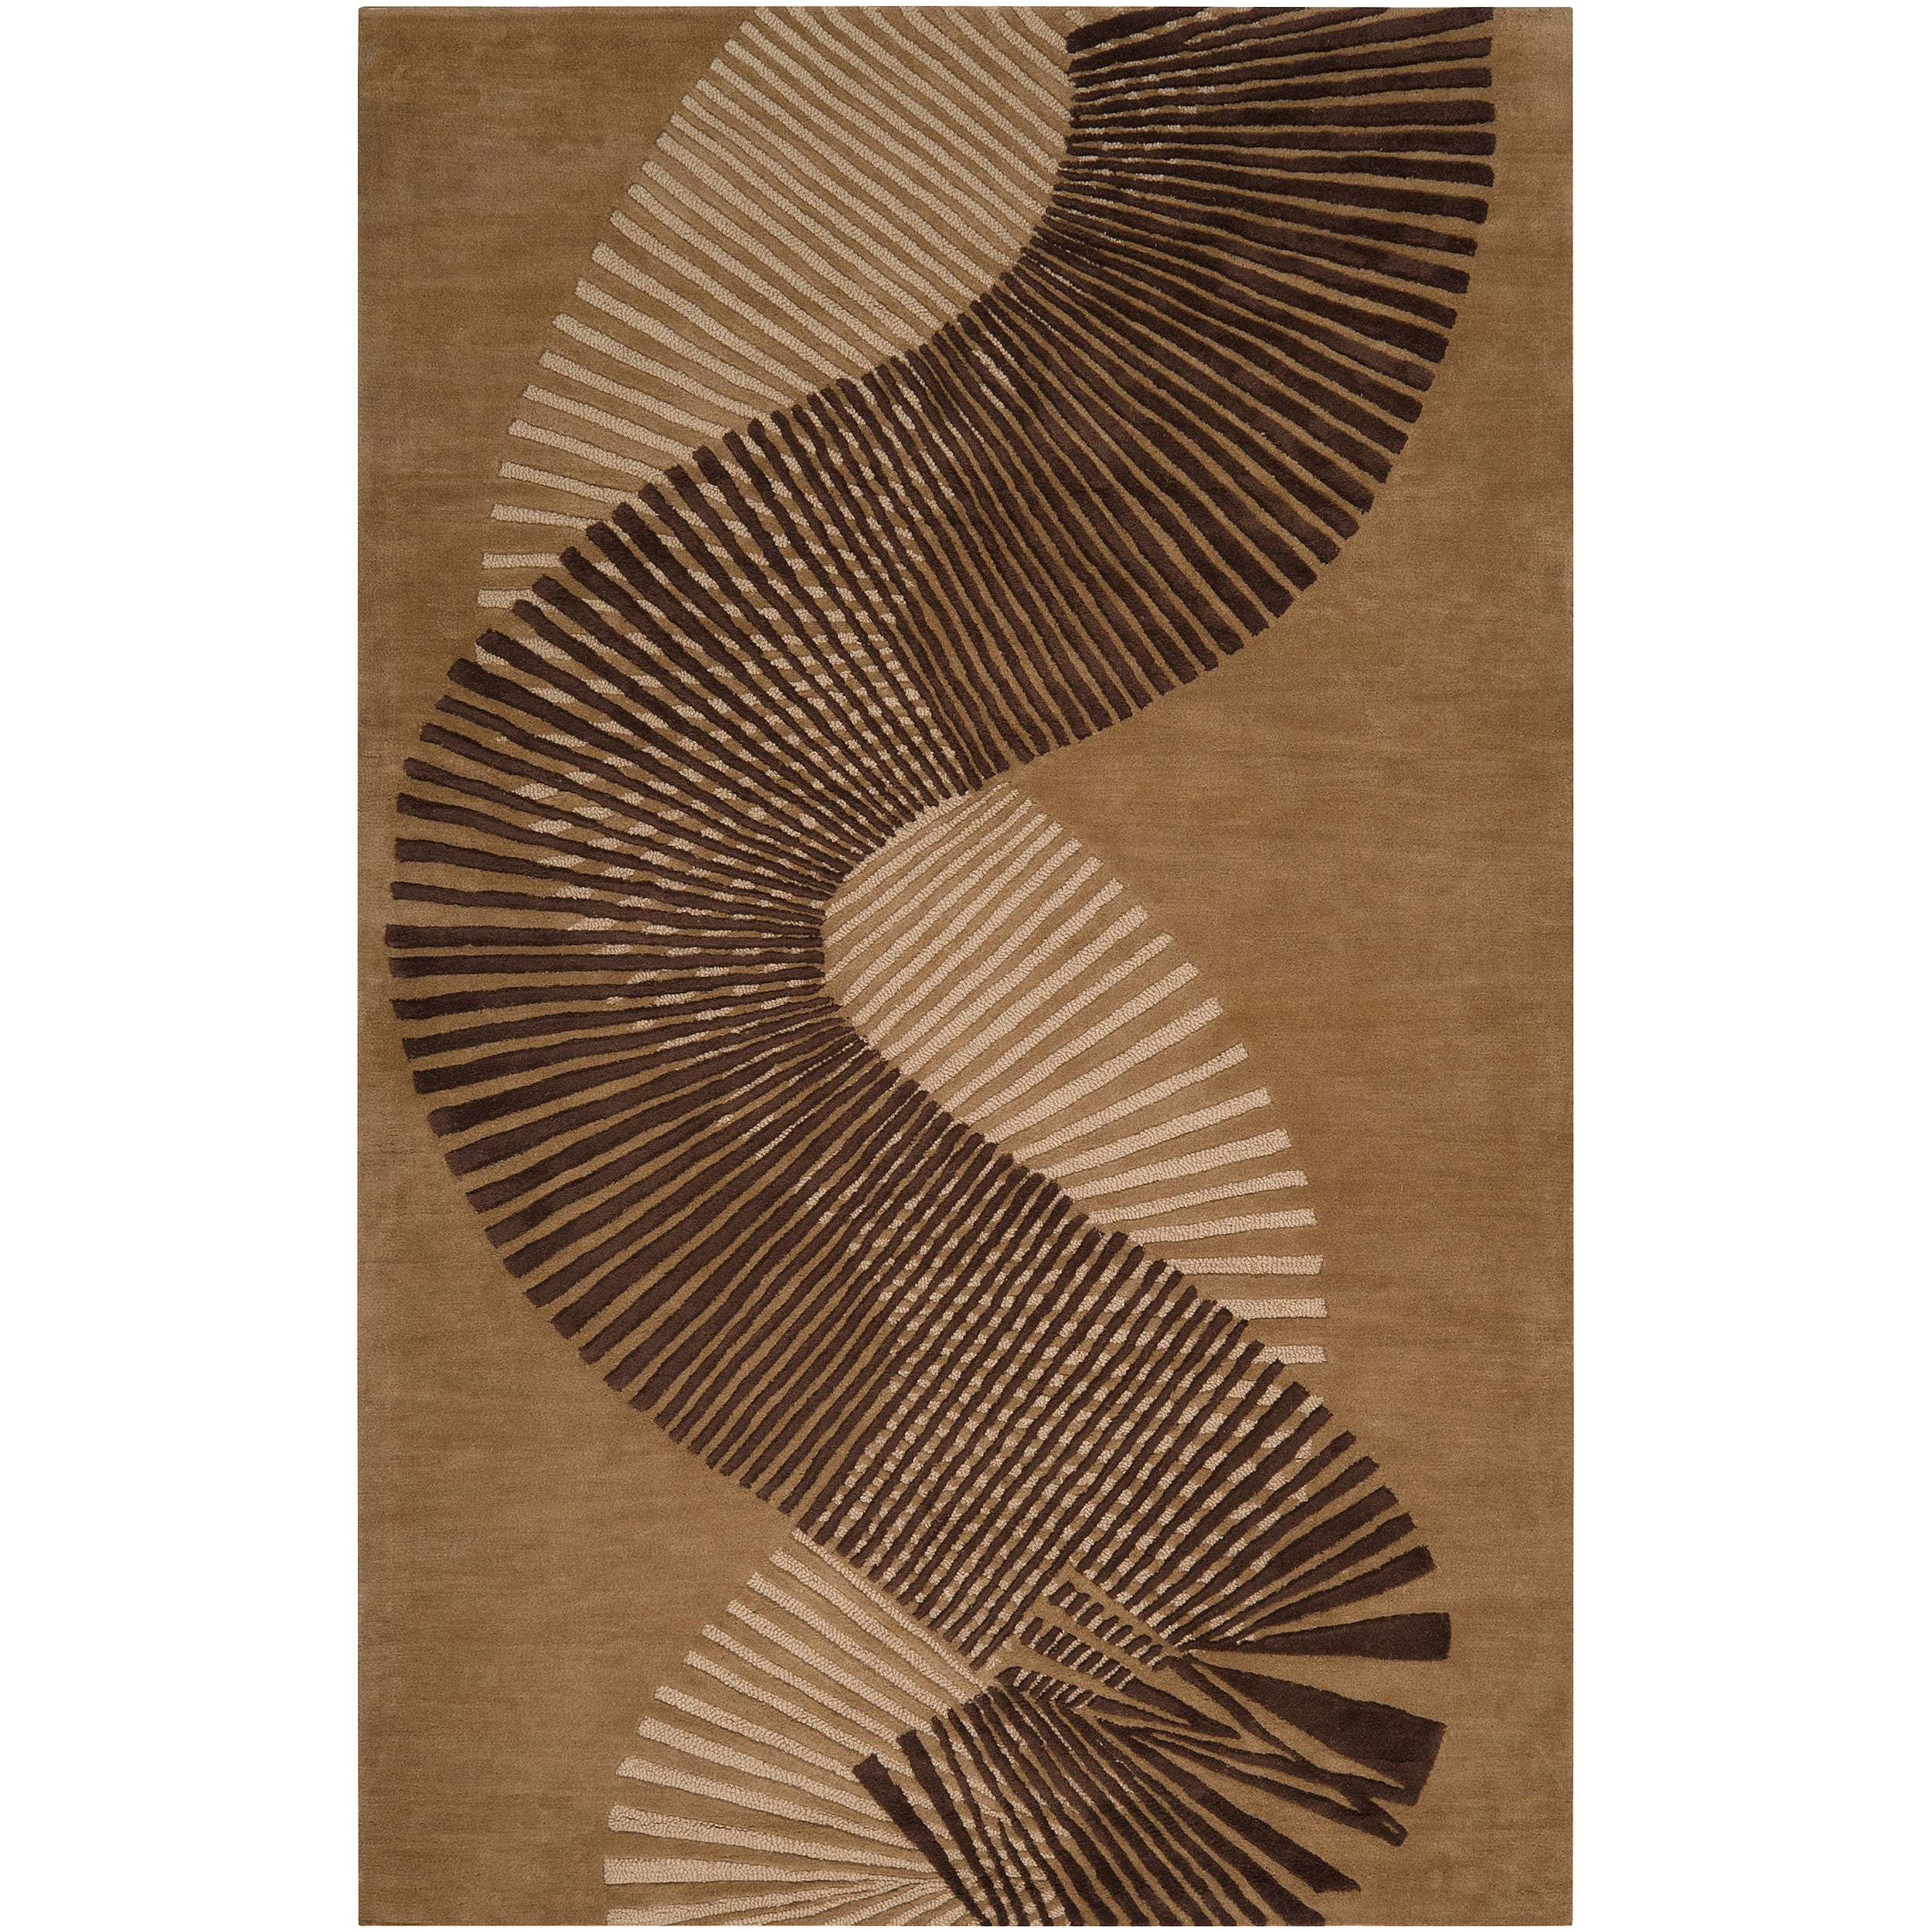 Hand-tufted Contemporary Brown Striped Akita New Zealand Wool Abstract Rug (9' x 13')